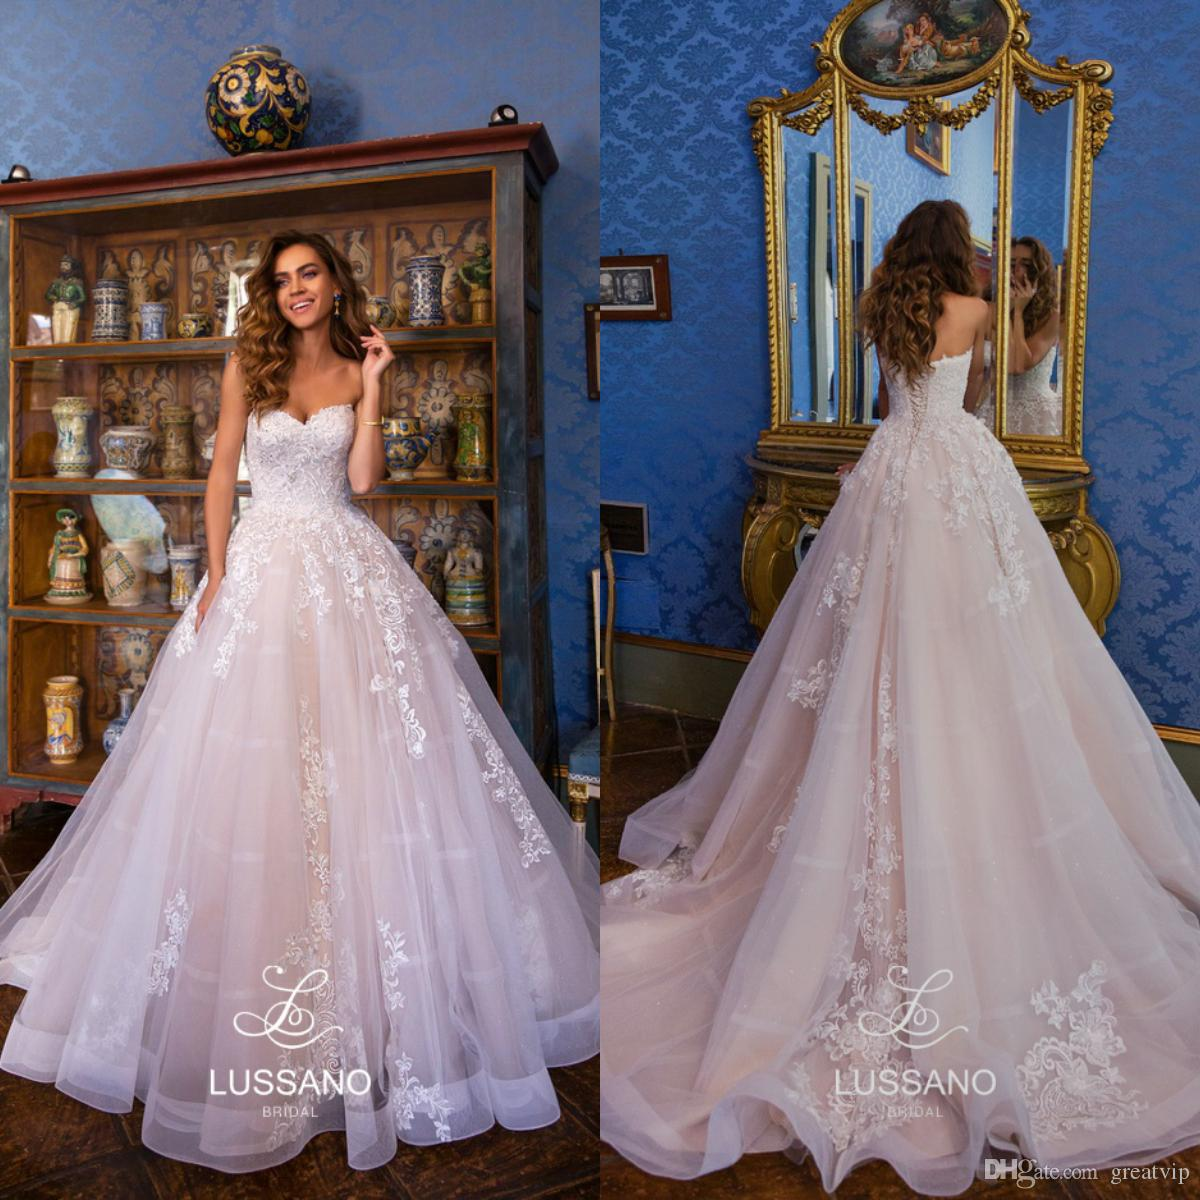 Lussano 2019 A Line Beach Wedding Dresses Sweetheart Lace Up Applique Boho  Sweep Train Bridal Gowns Plus Size Bohemian Vestidos De Noiva Bohemian  Wedding ... f61e512e8fac